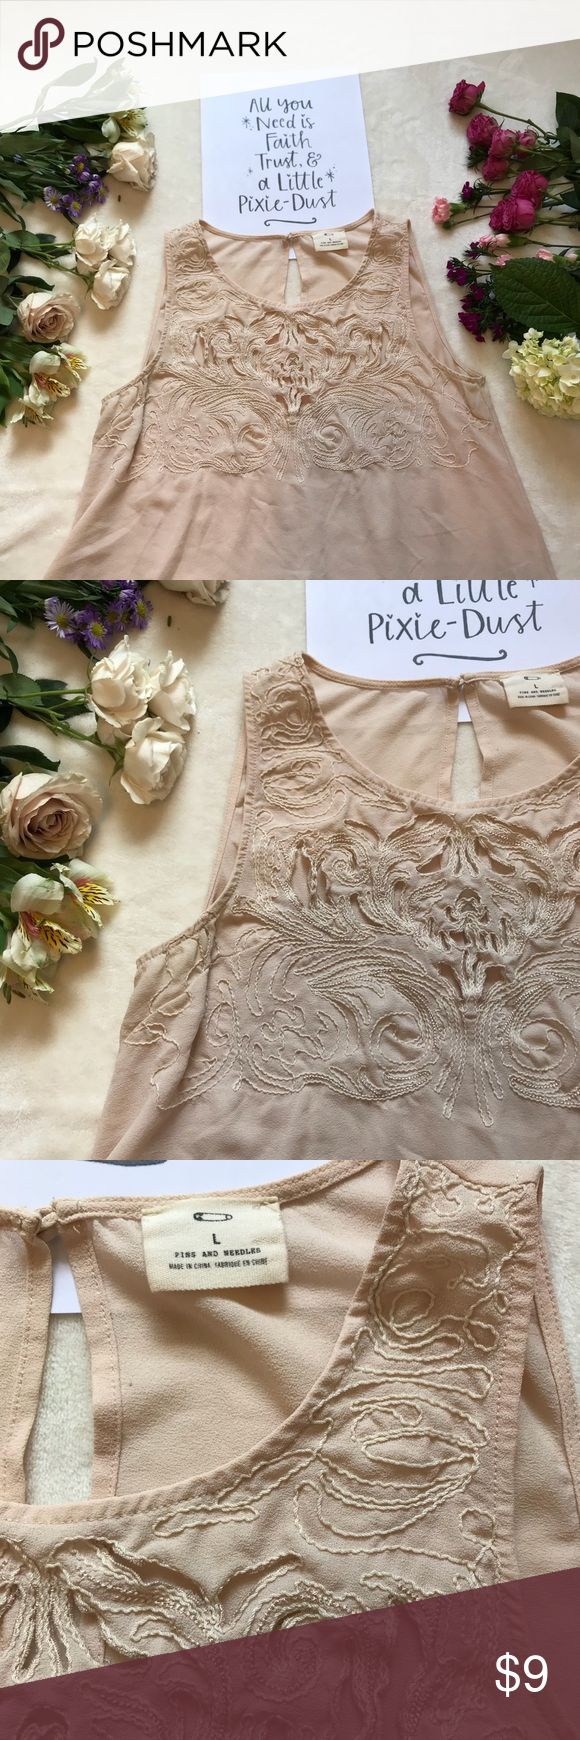 Nude tank top Cute nude color embroidered tank top. Some pink discoloration and a few tiny snags on the back (see last picture), but still has a lot of life left in it. Looks super cute with a lace bandeau underneath! 🤗 Pins & Needles Tops Tank Tops